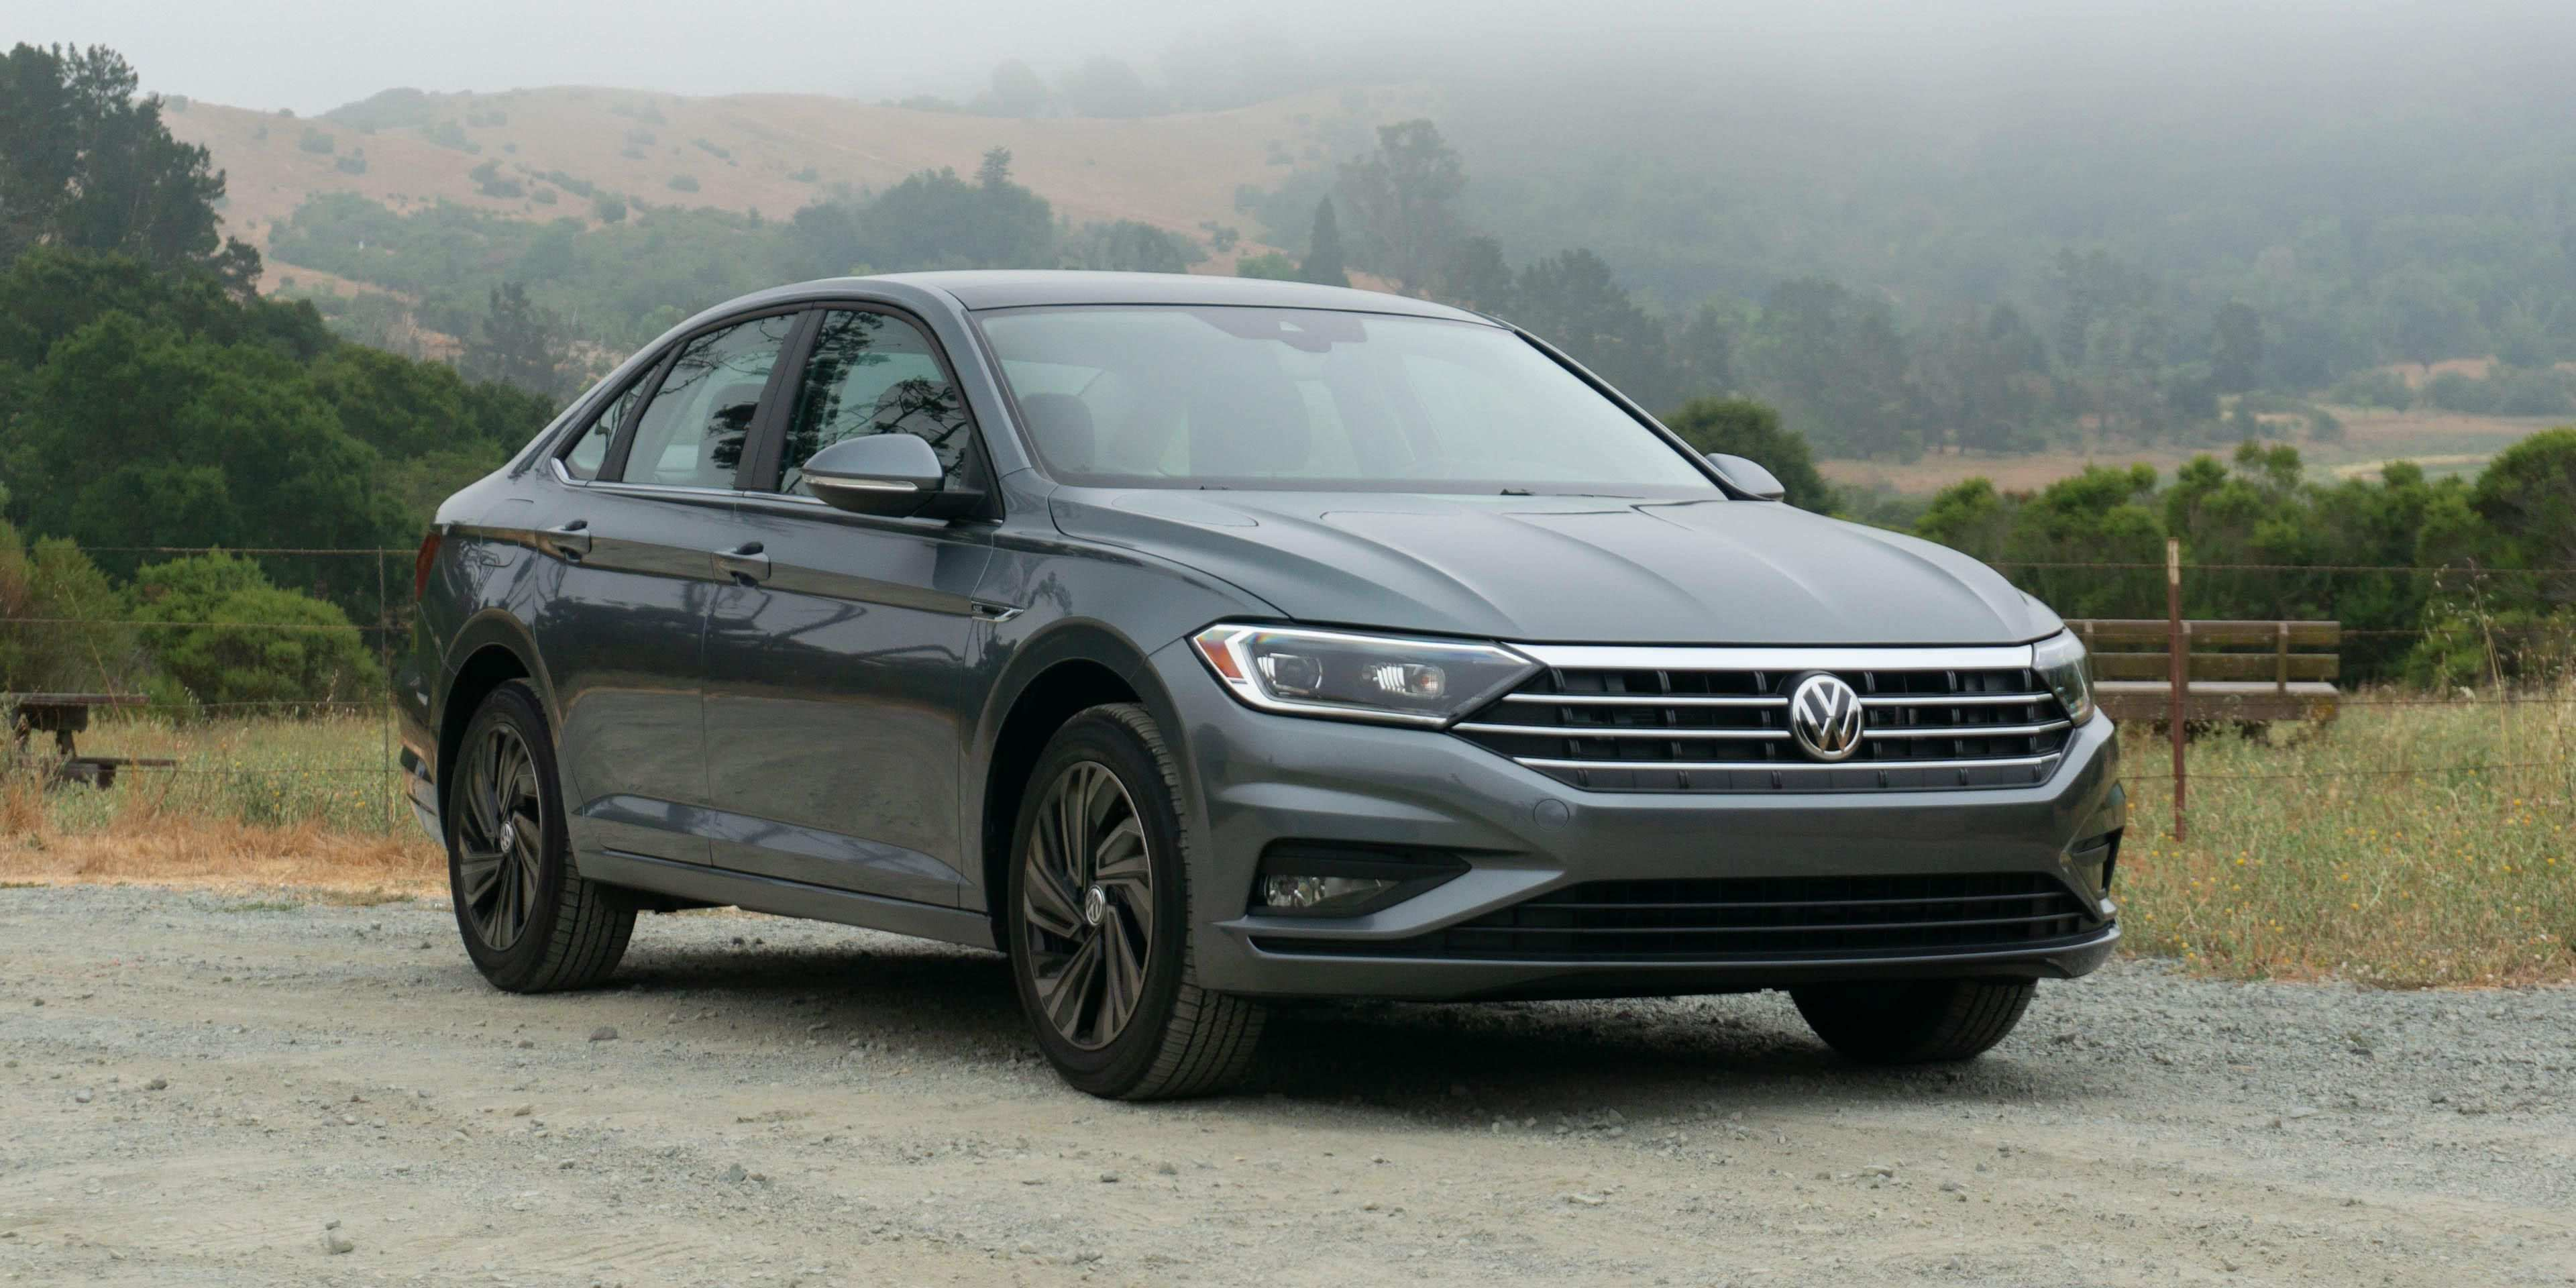 19 Concept of 2019 Vw Jetta Overview by 2019 Vw Jetta